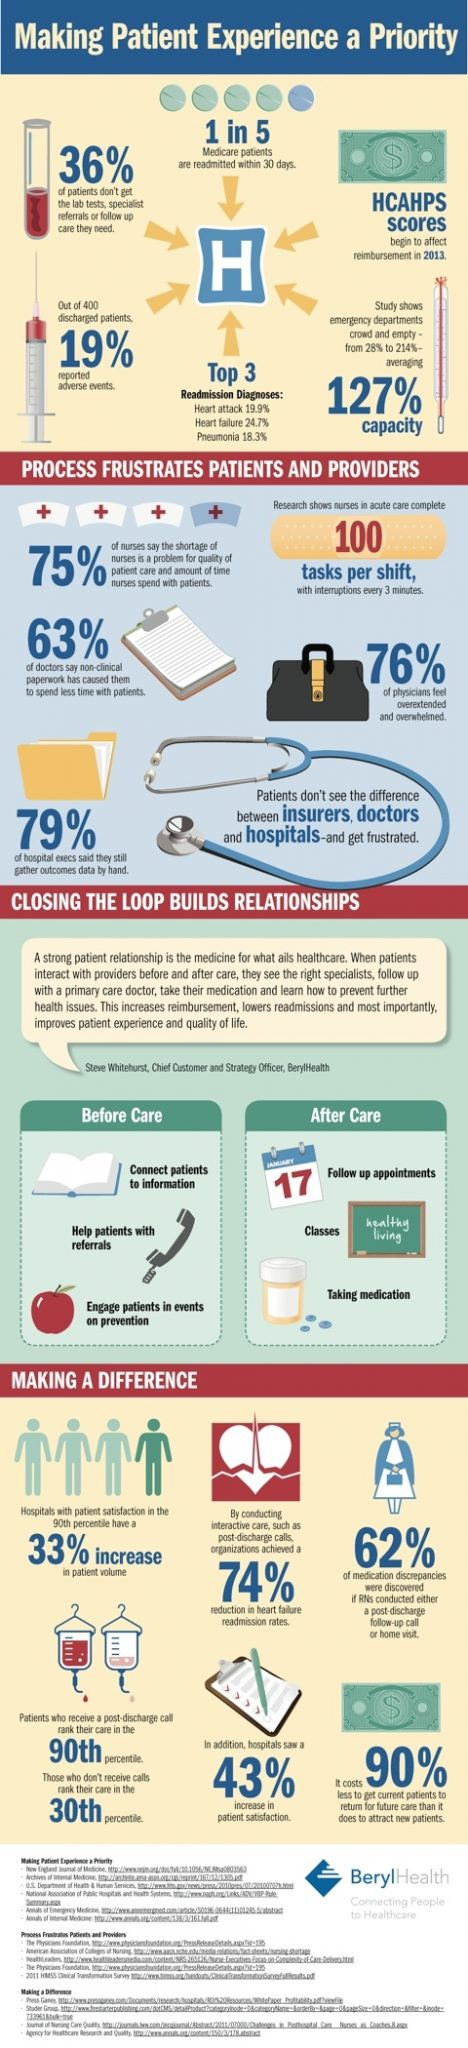 Making-Patient-Experience-A-Priority-Infographic